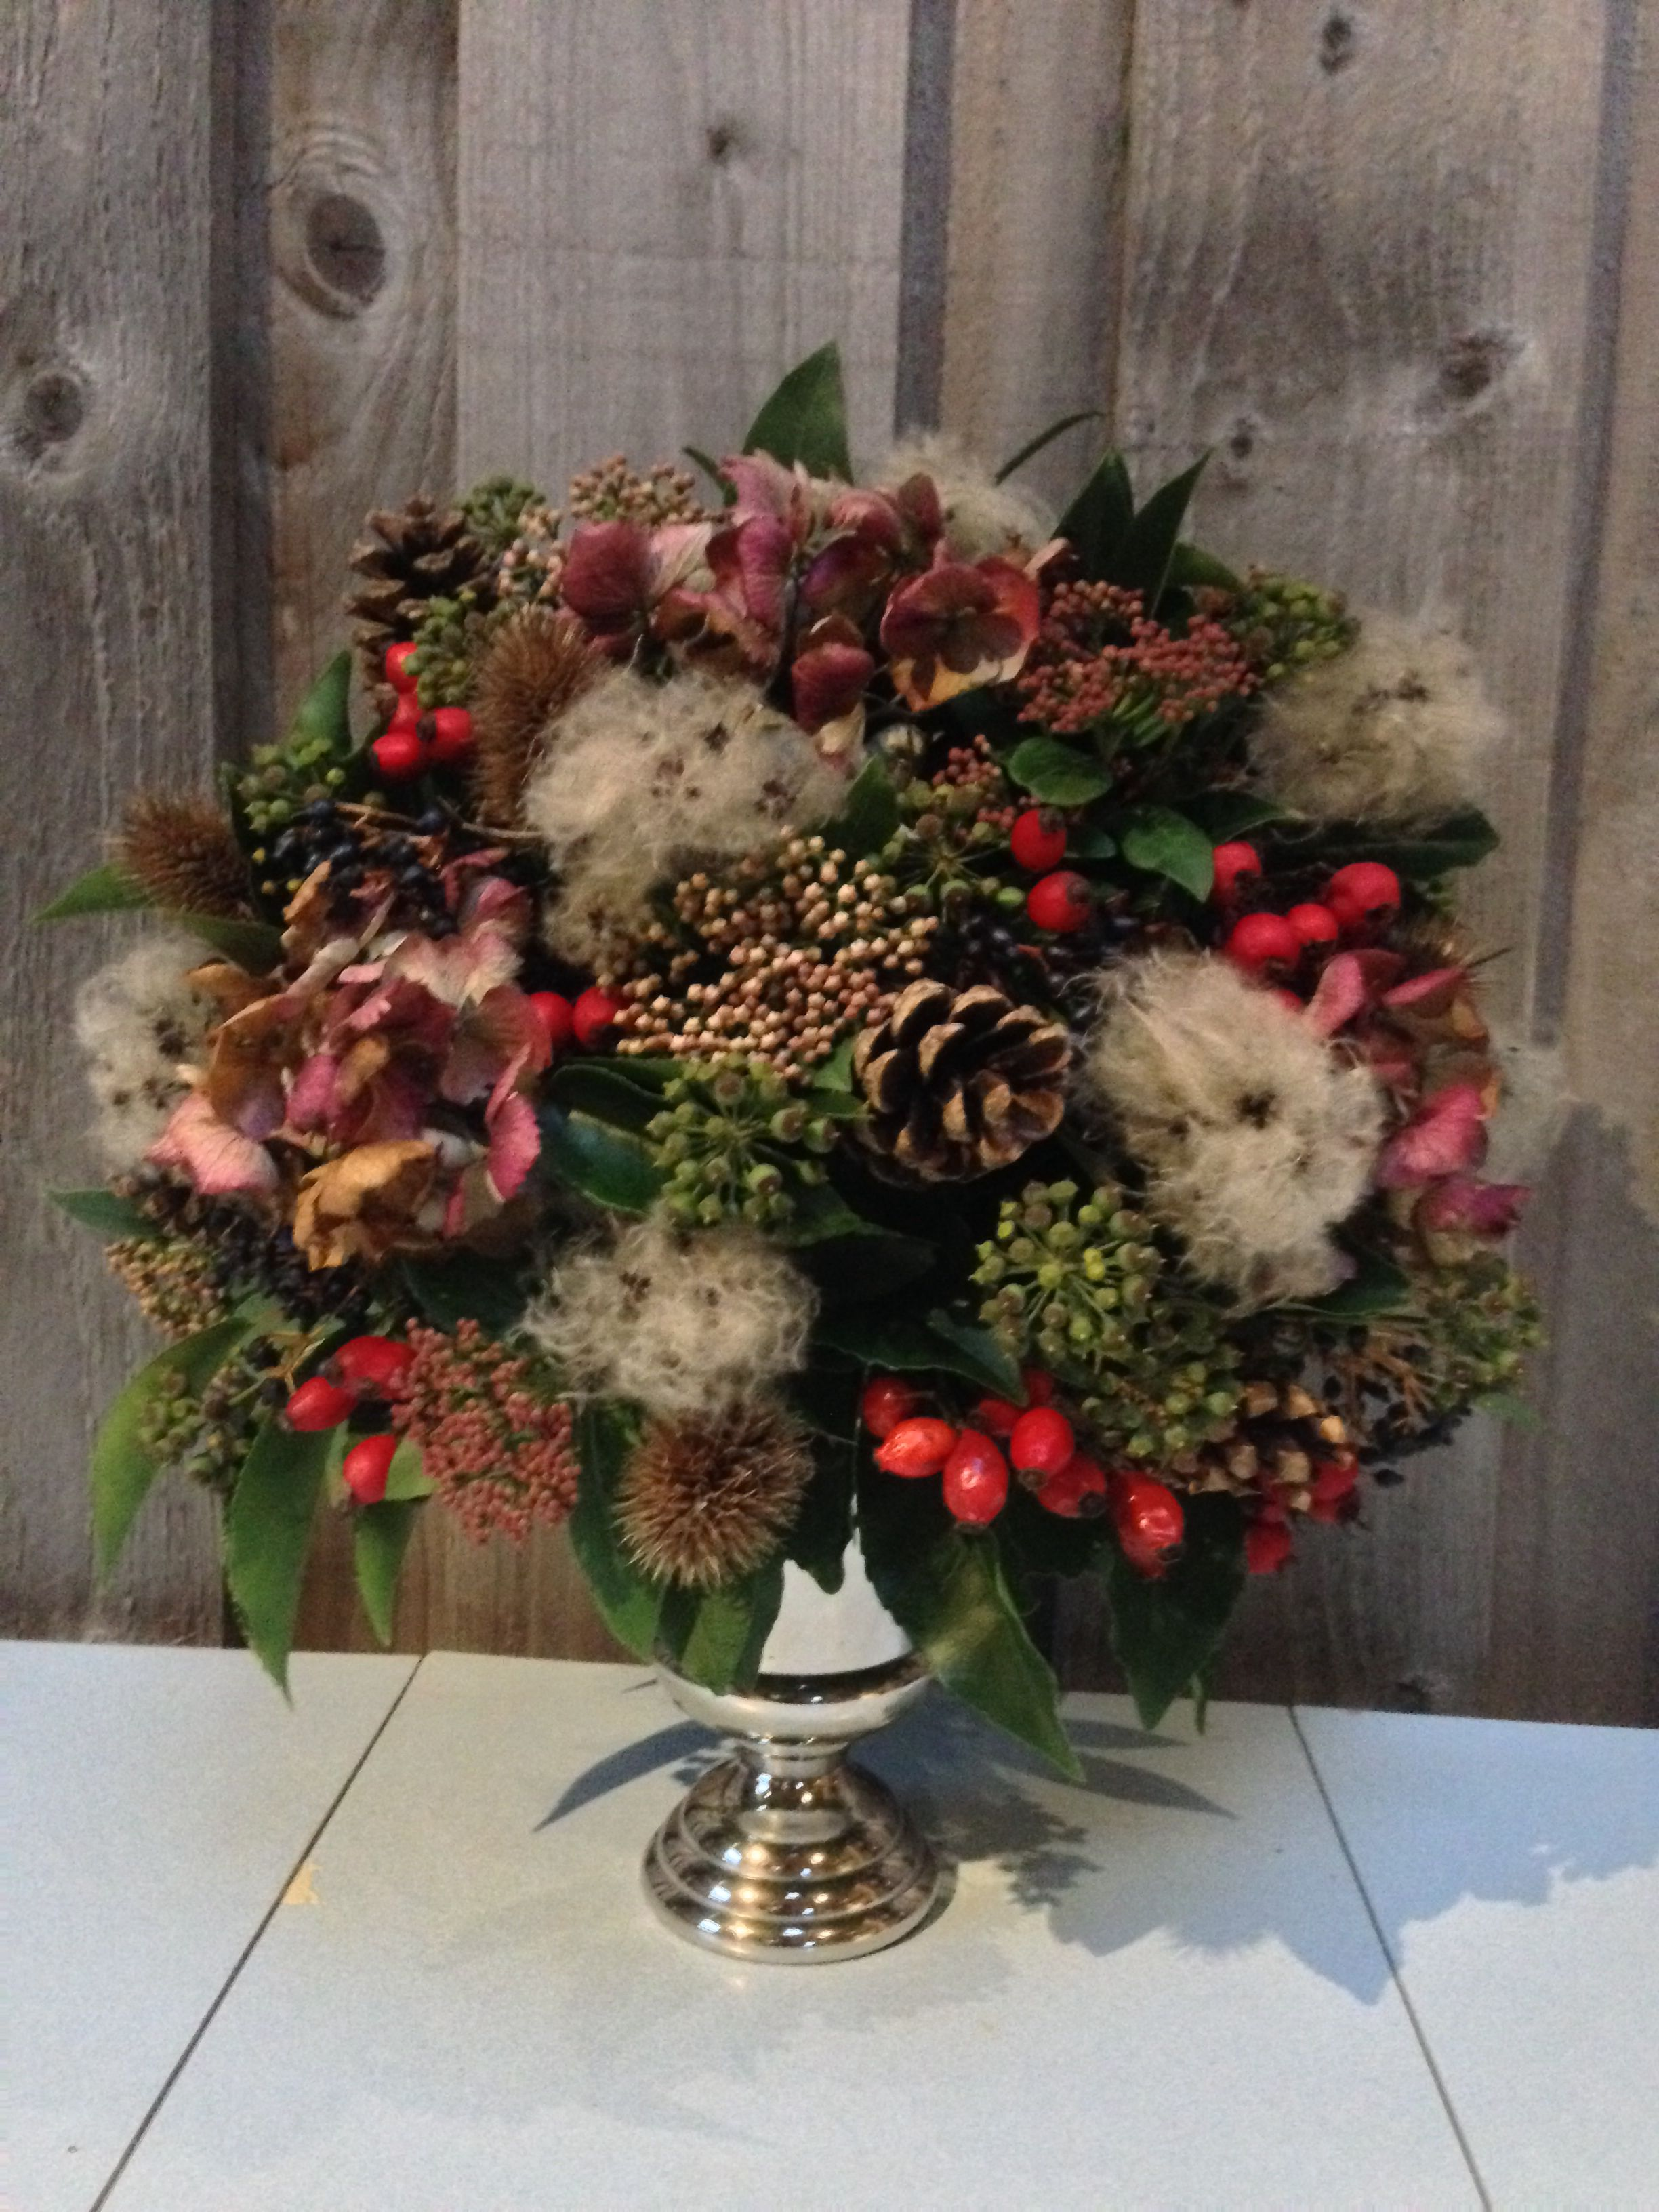 A Slightly More Hedgerow Themed Christmas Table Centre Old Man S Beard Makes It Feel A Little Mor Christmas Flowers Flower Centerpieces Christmas Centerpieces